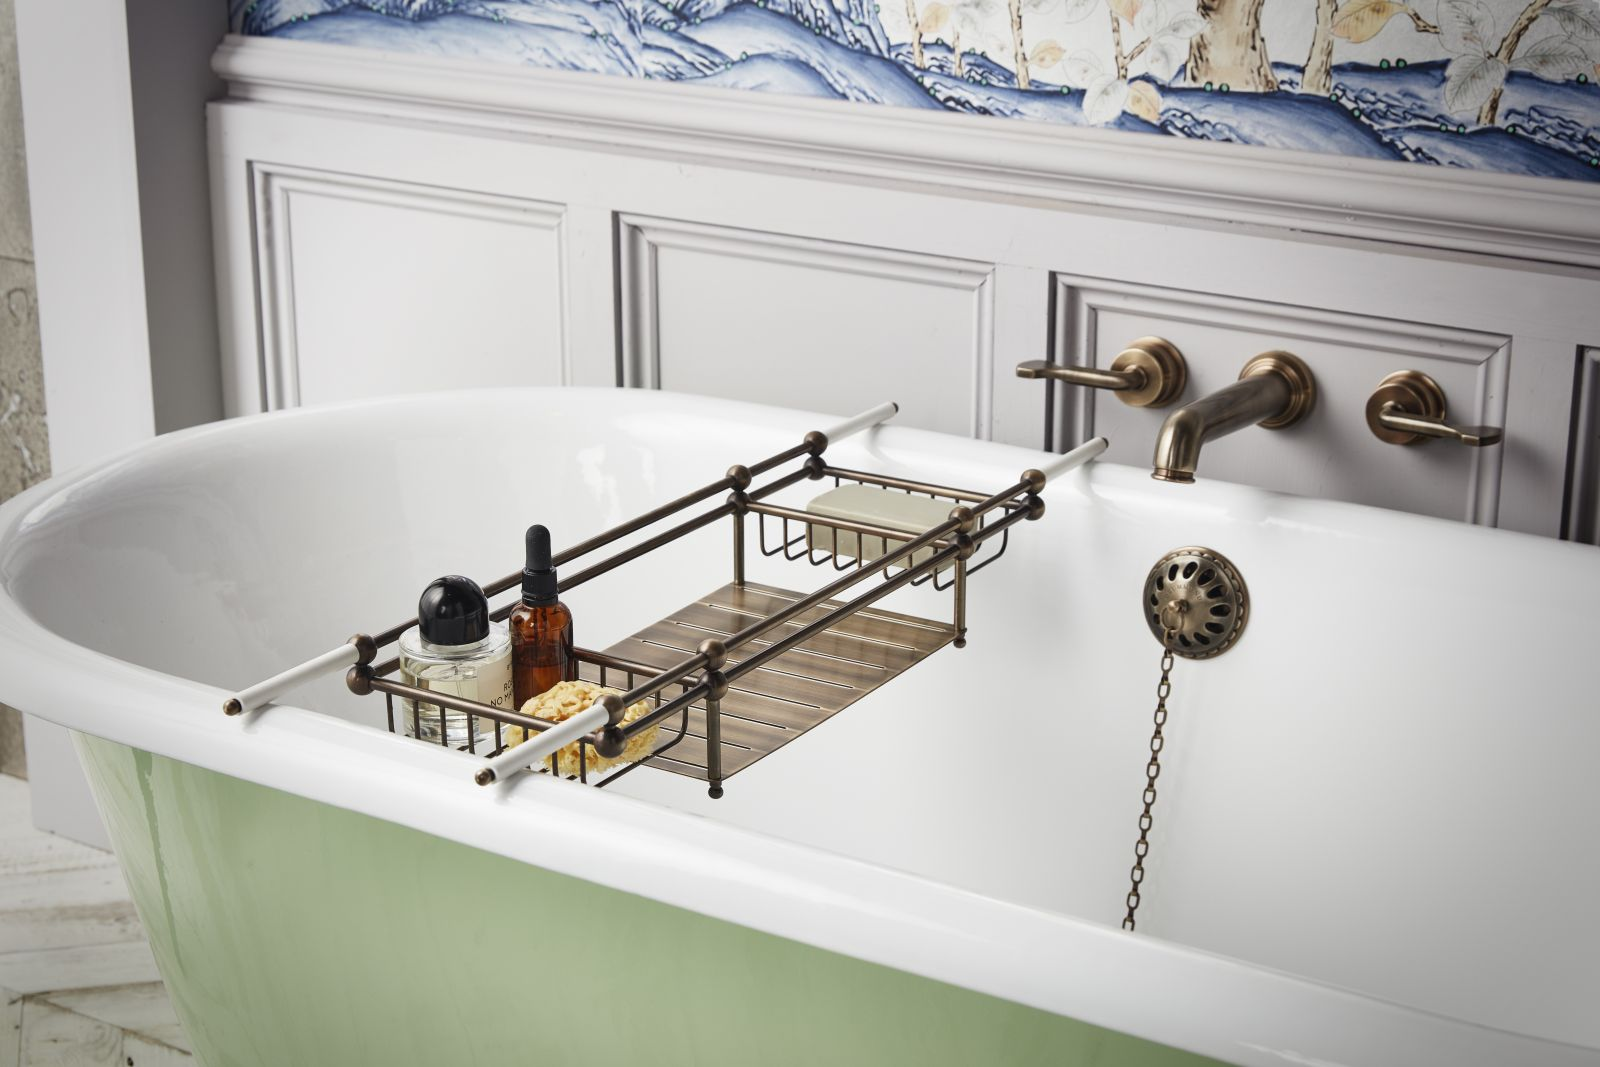 Bring vintage chic and a bright colorful touch to your bathroom with a Tweed Tub